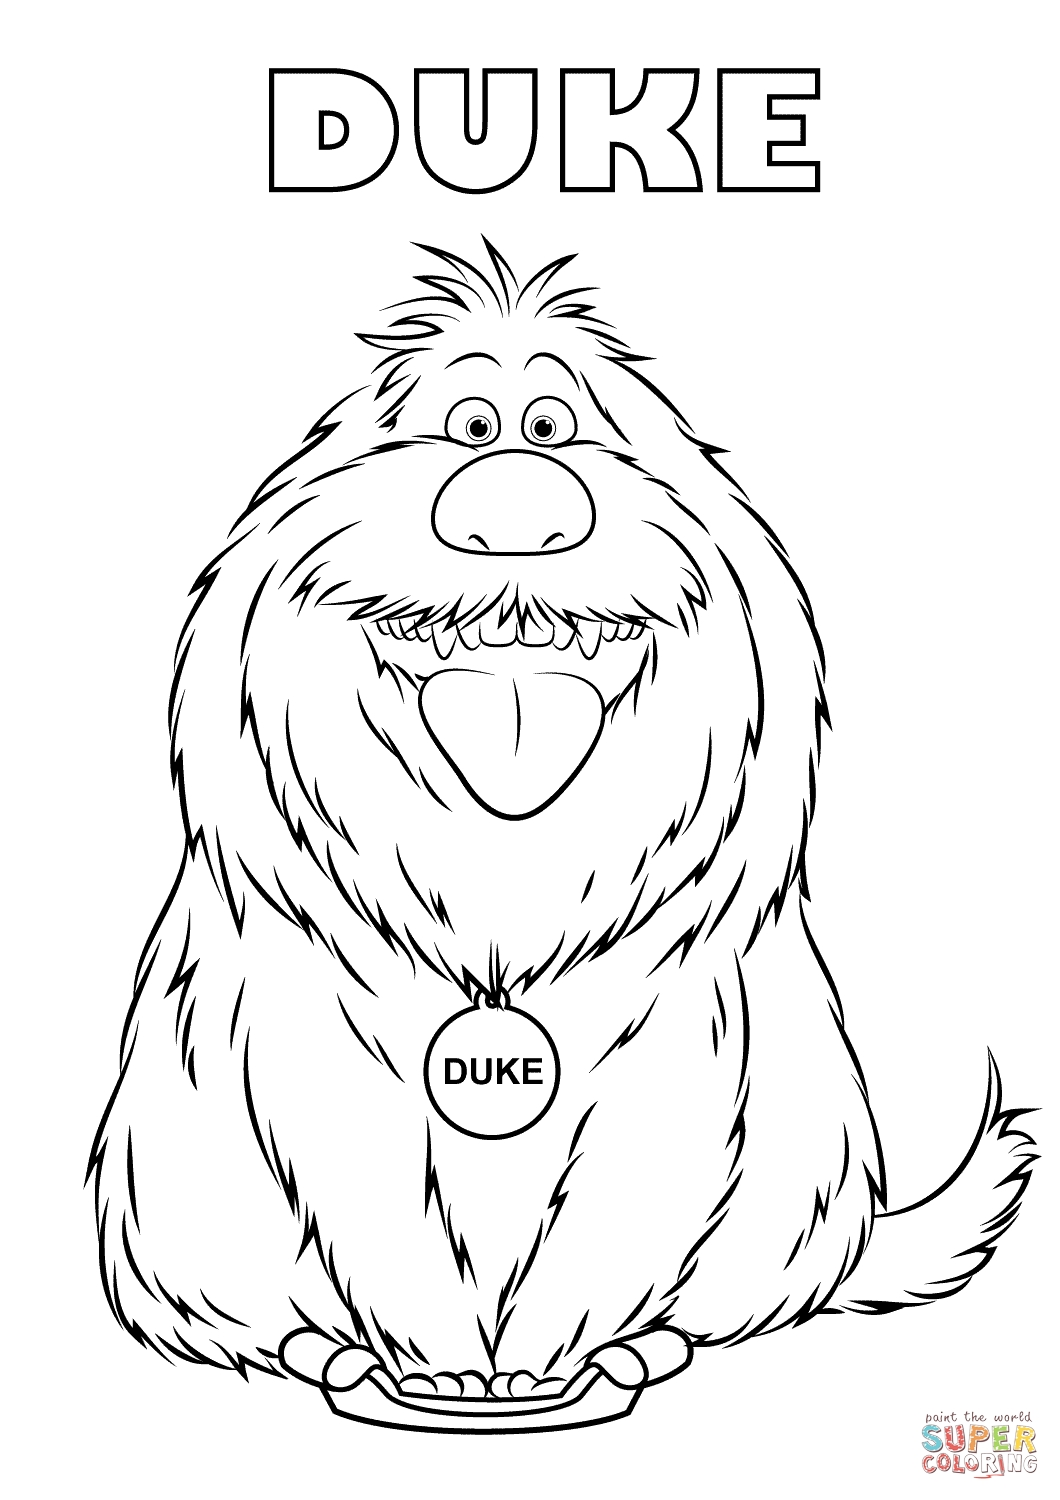 Duke From The Secret Life Of Pets Coloring Page | Free Printable  August Printable Images To Color